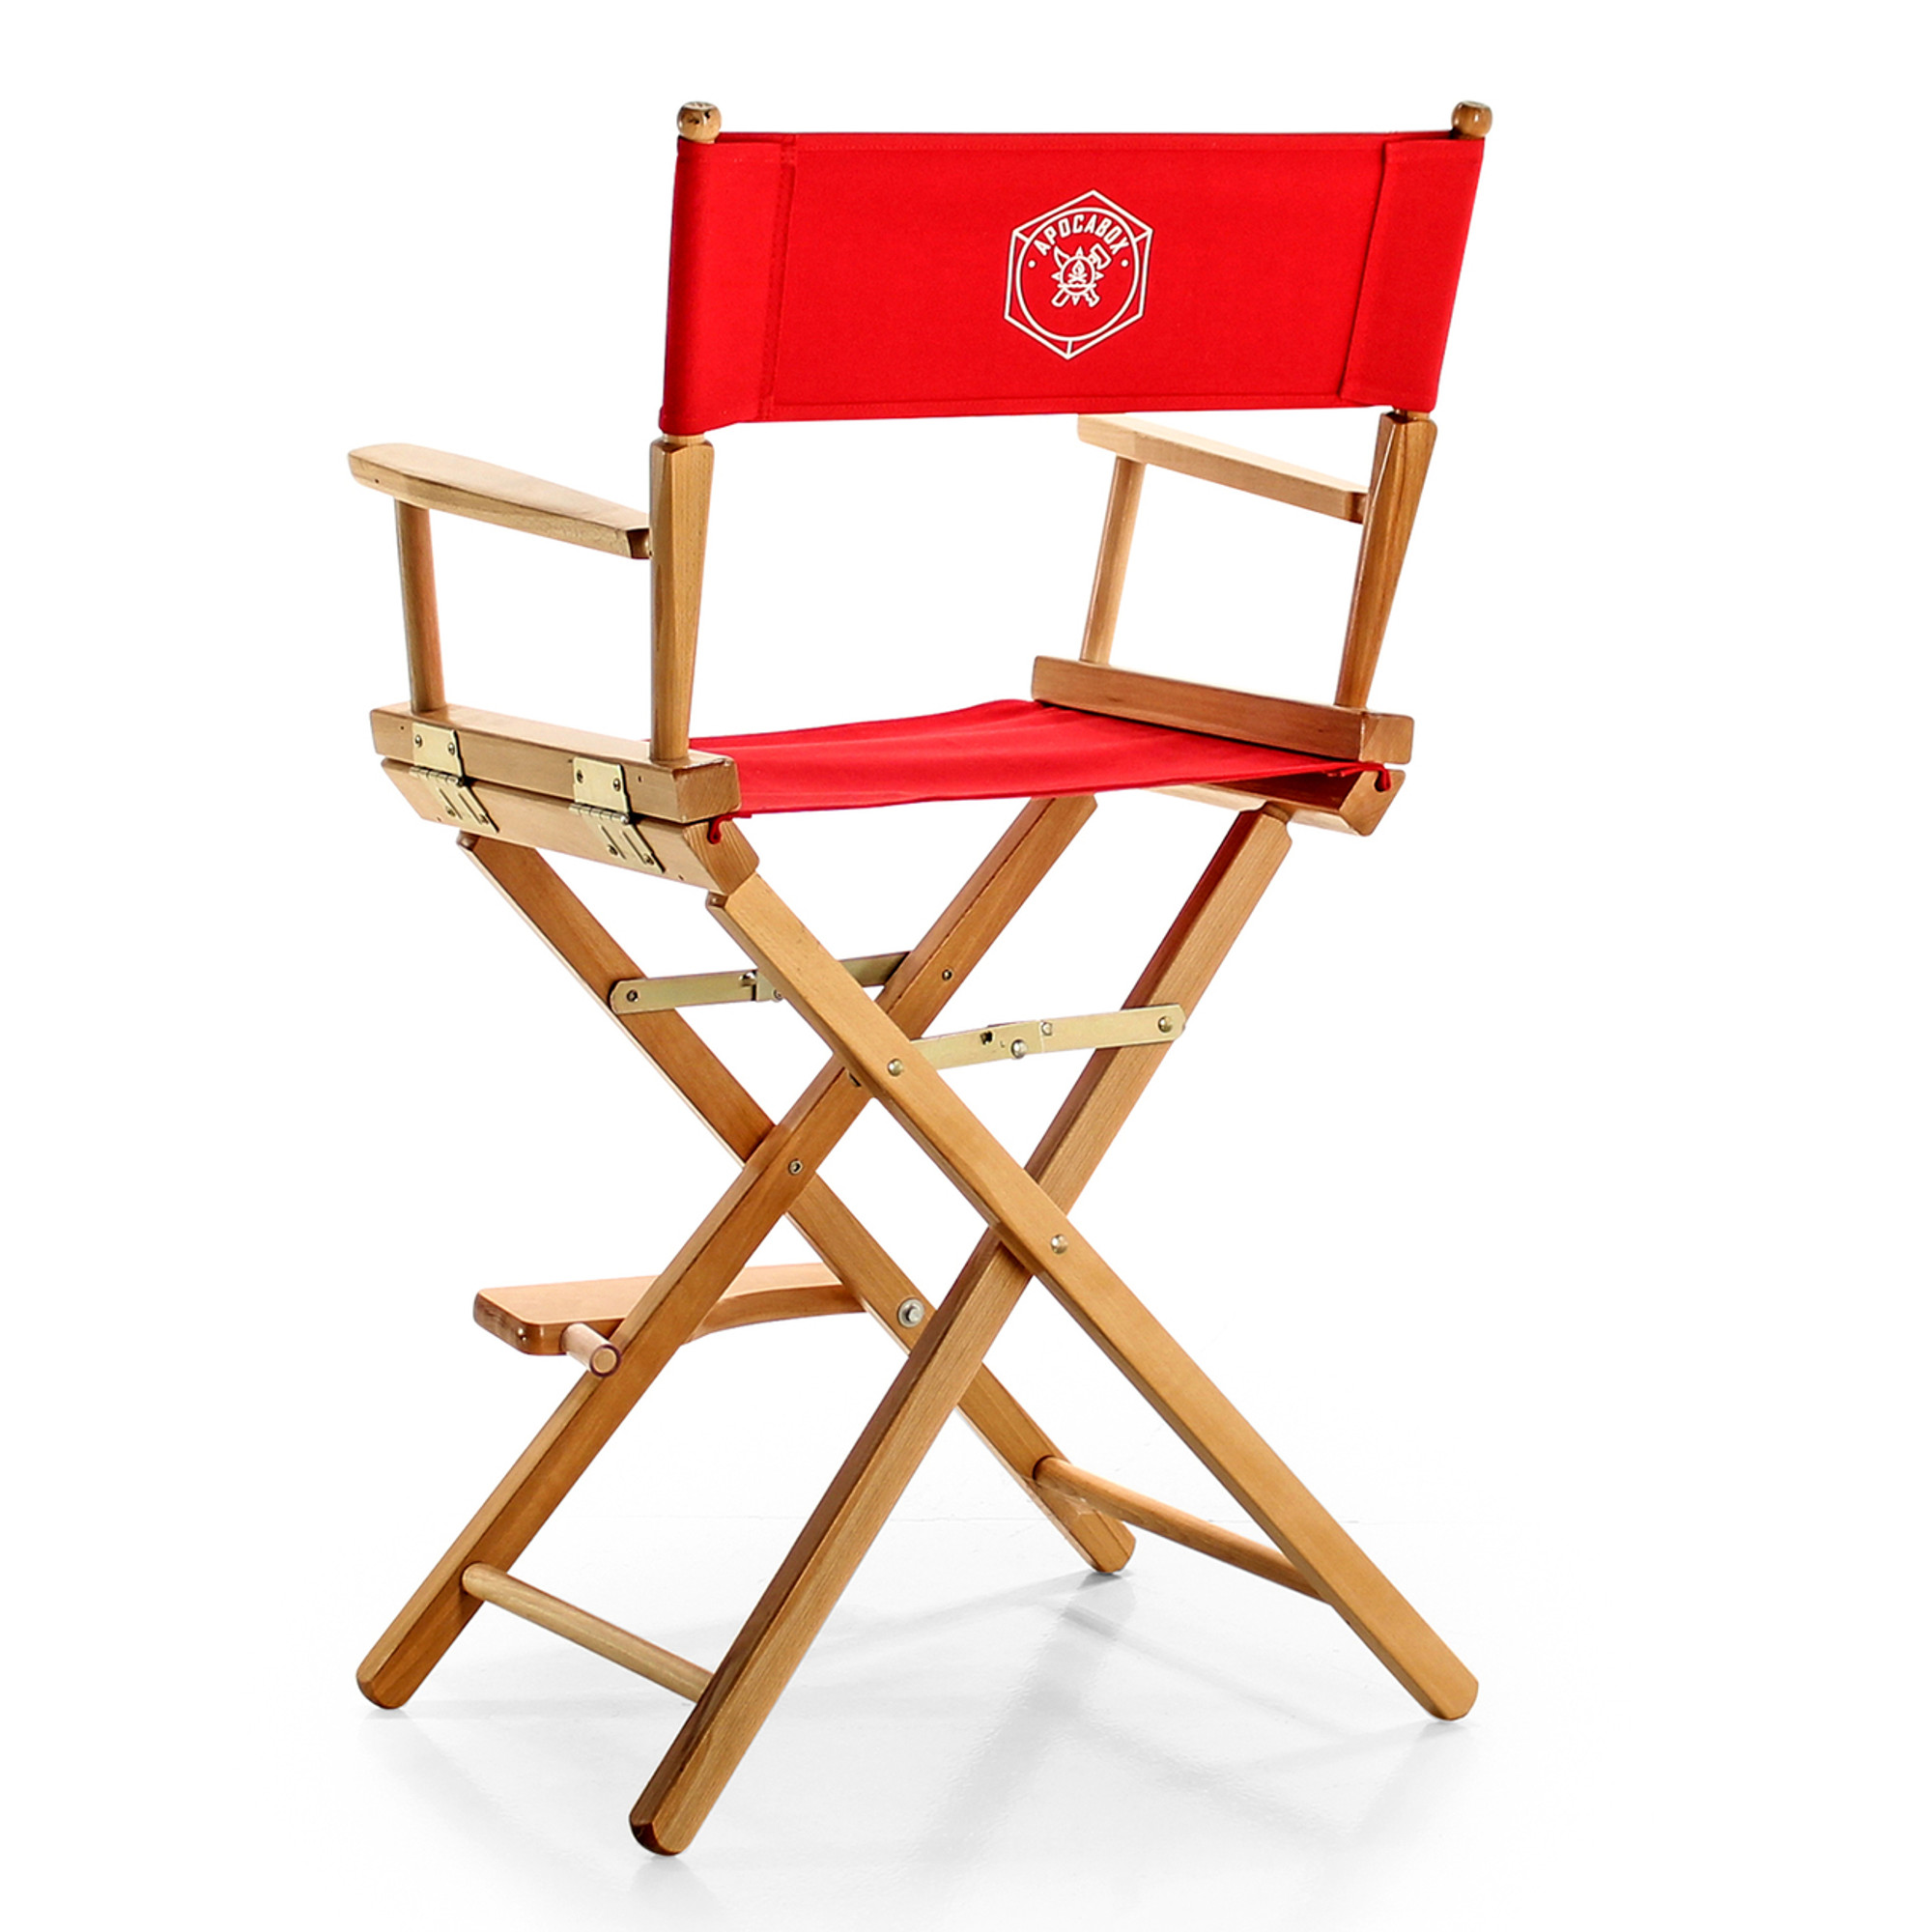 Cool Custom Printed Logo Directors Chair Unemploymentrelief Wooden Chair Designs For Living Room Unemploymentrelieforg